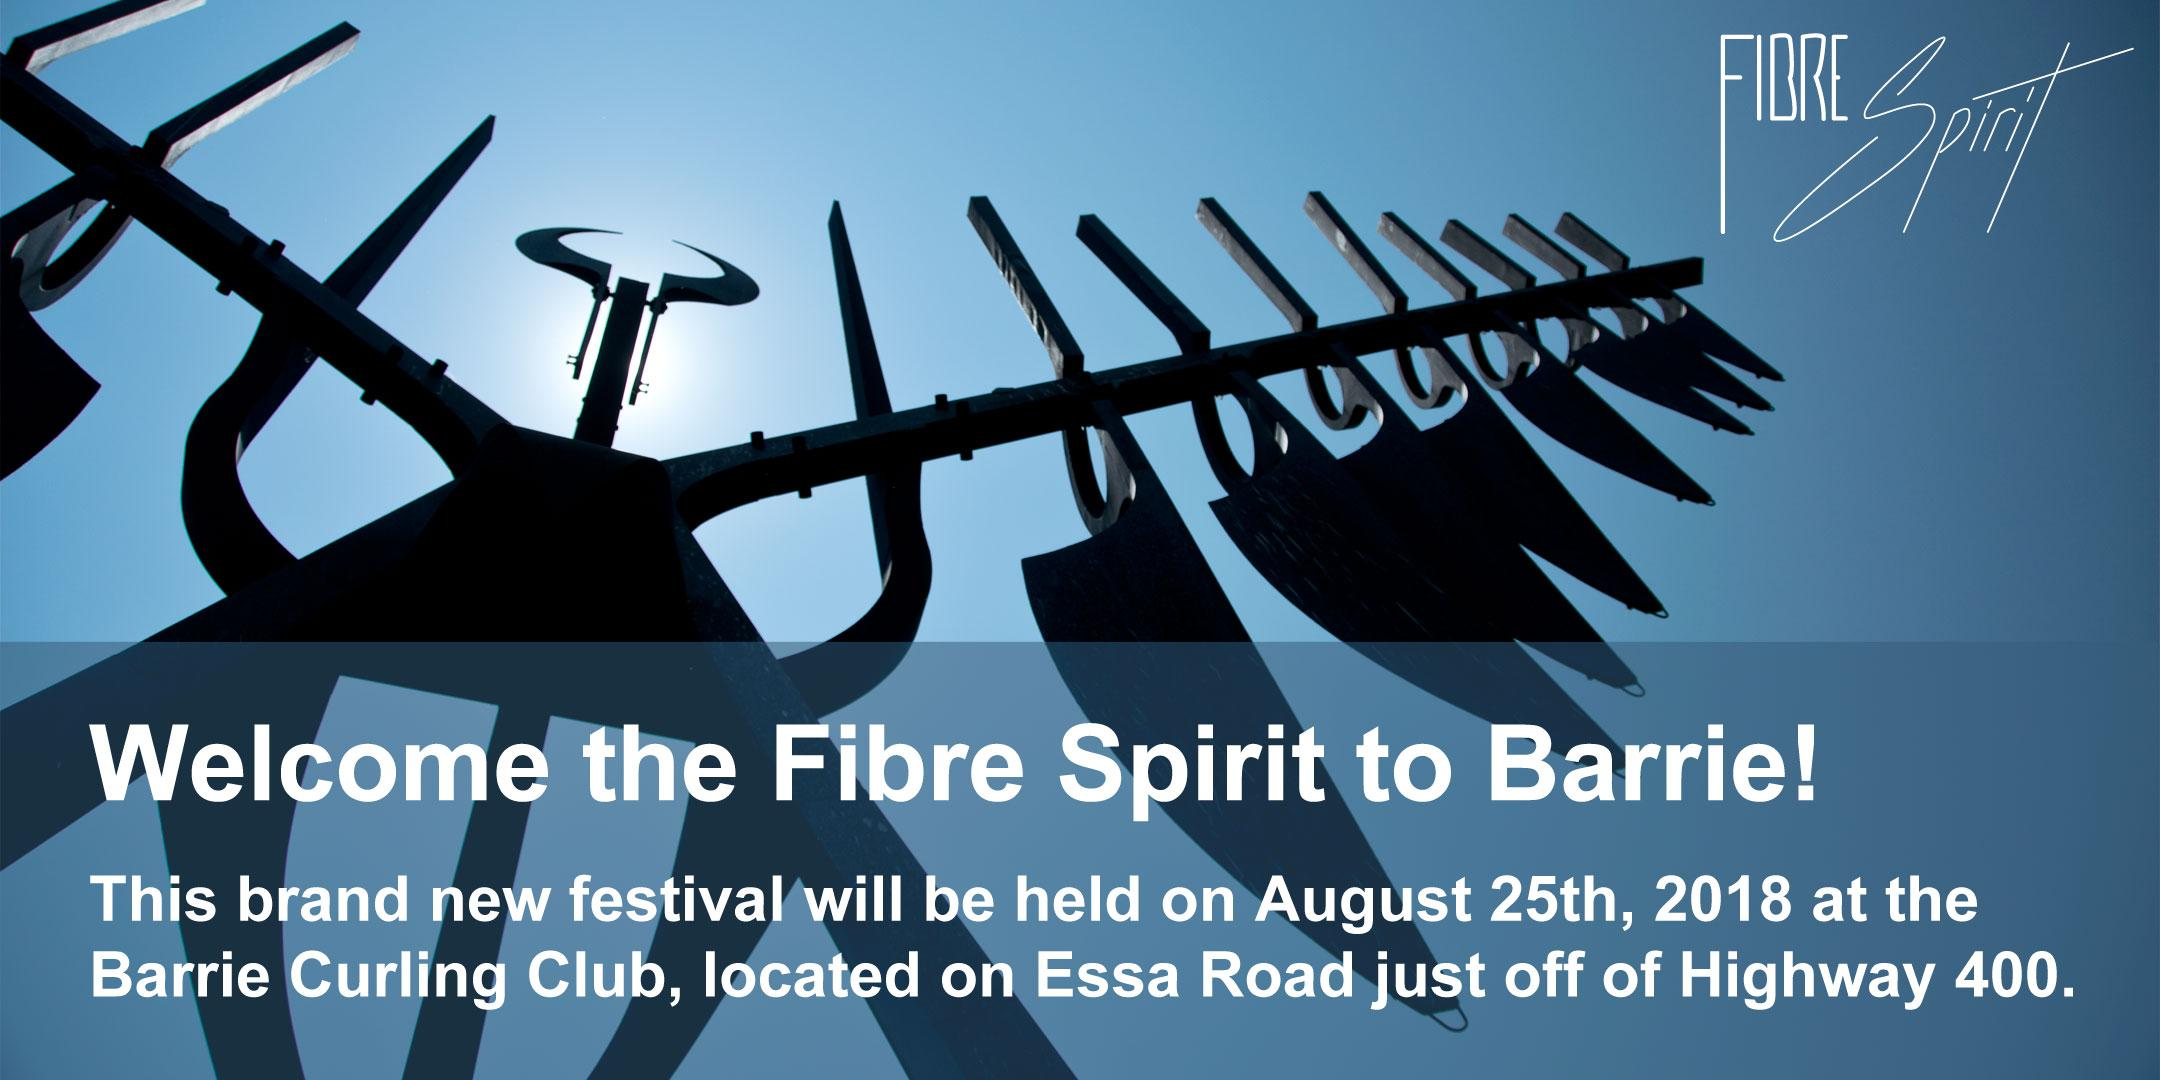 Fibre Spirit at Barrie Curling Club, Barrie